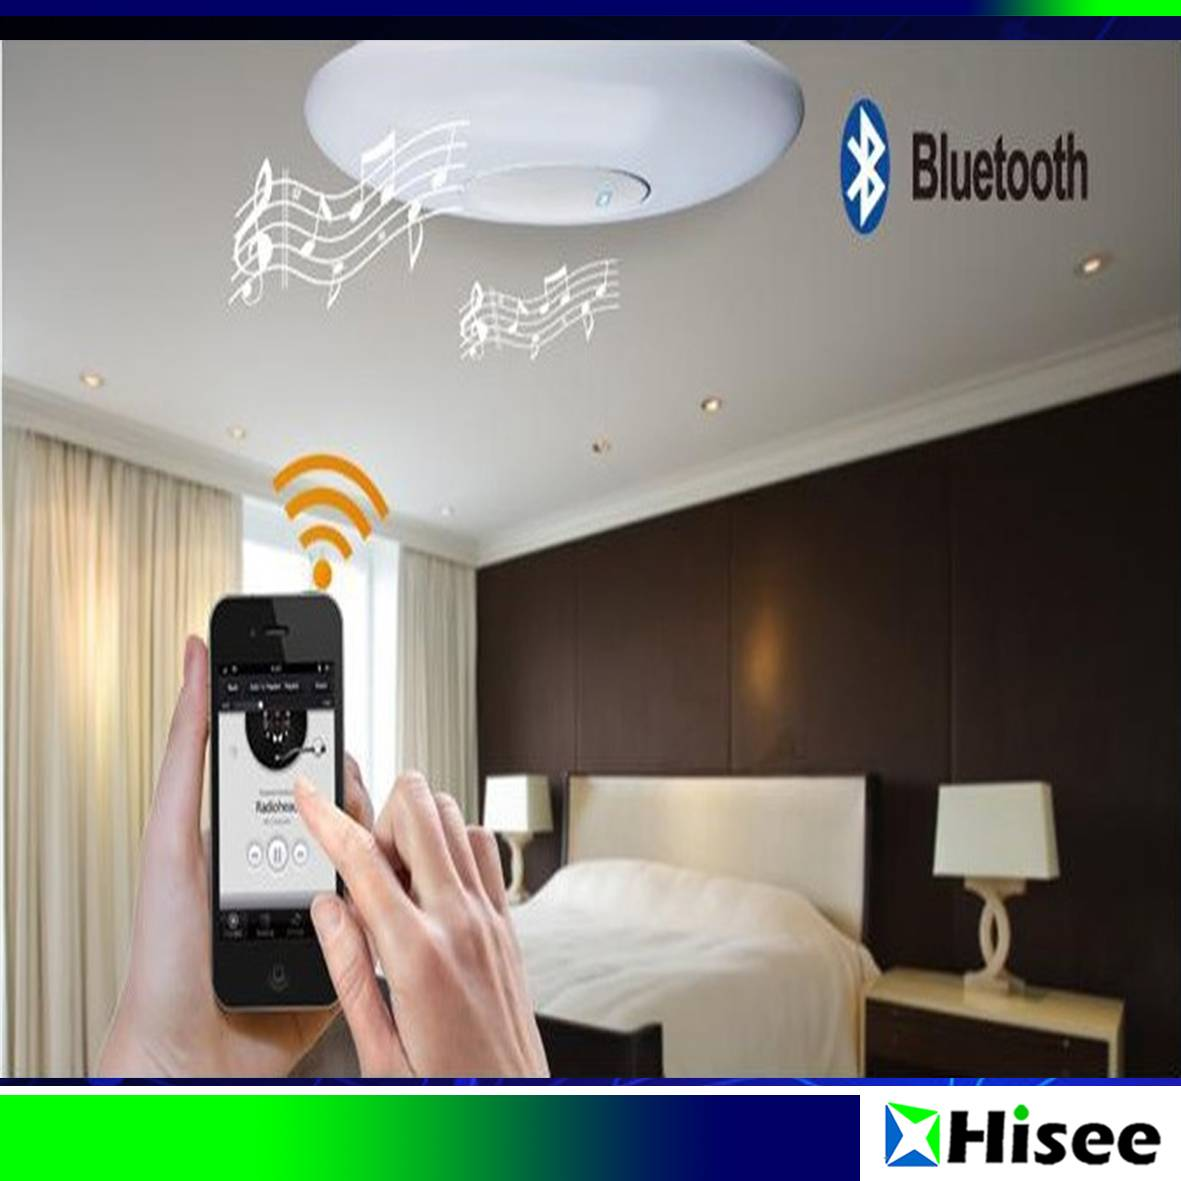 Intelligent Multifunction IR Remote Control Adjustable Lighting LED Ceiling Light with Bluetooth Spe